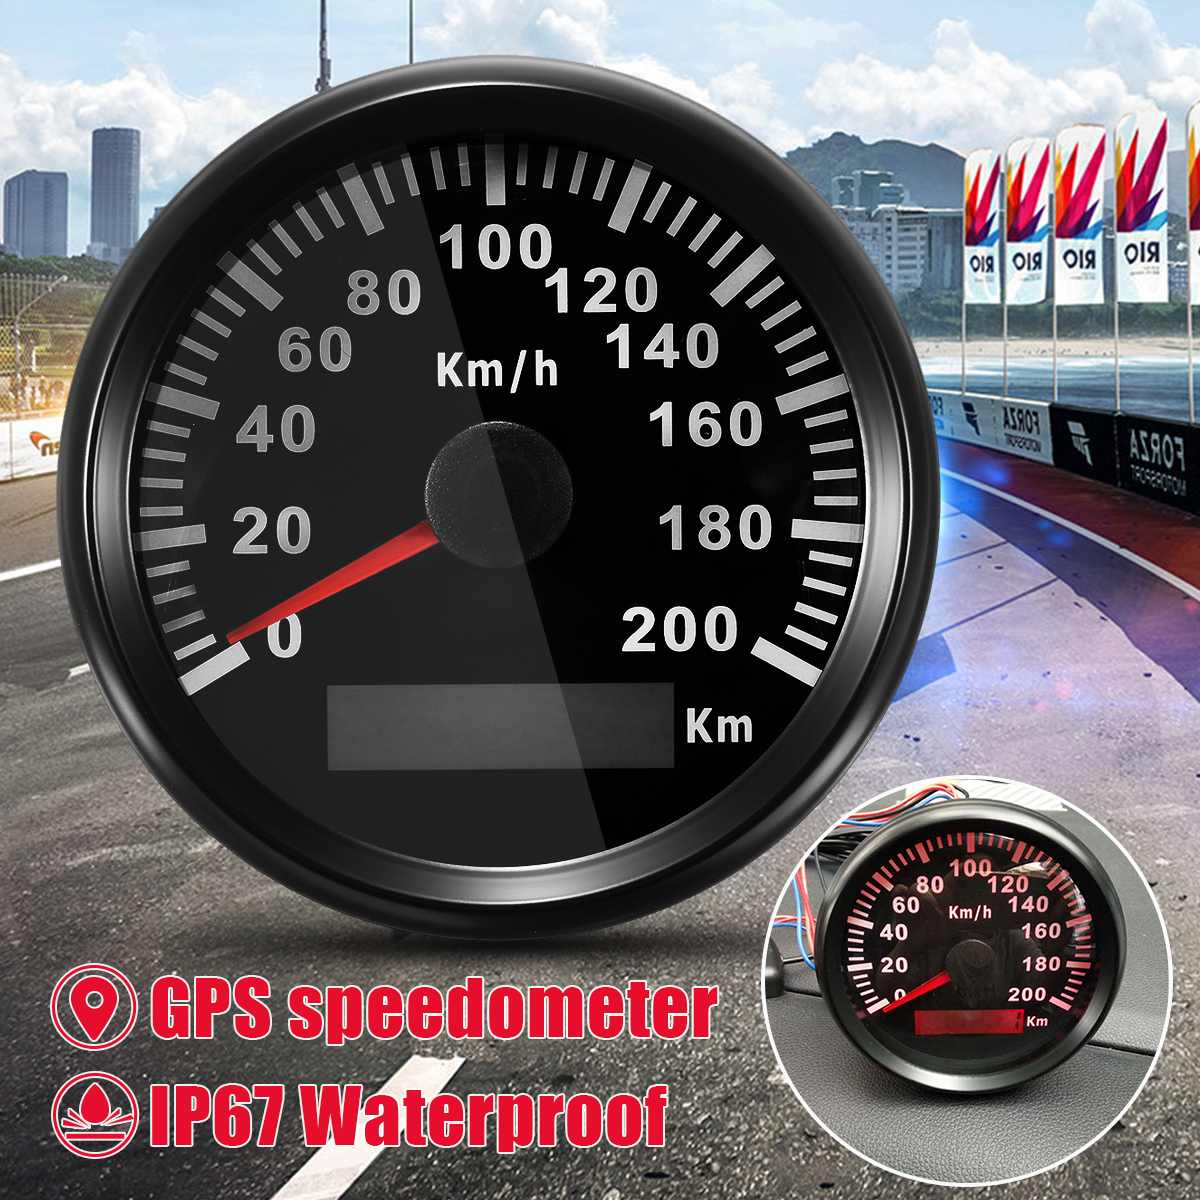 Autoleader Universal 85mm GPS Speedometer Stainless 200km/h Bike Car Truck Motor Auto With Backlight Waterproof Digital GaugesAutoleader Universal 85mm GPS Speedometer Stainless 200km/h Bike Car Truck Motor Auto With Backlight Waterproof Digital Gauges